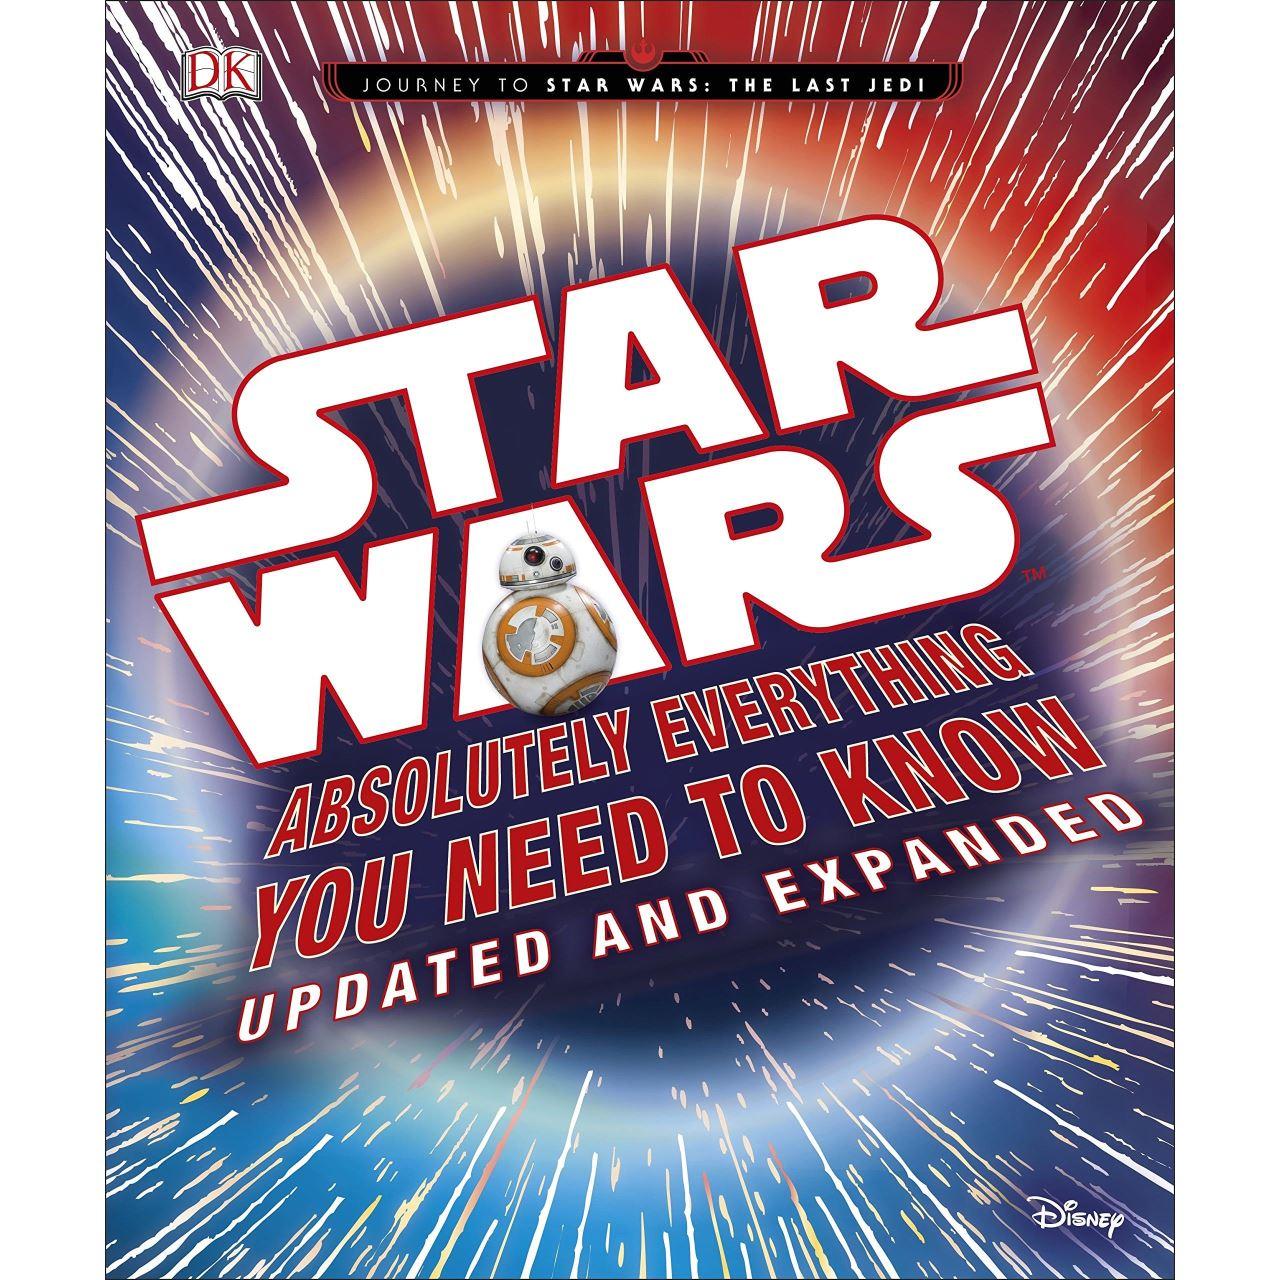 Star Wars Absolutely Everything You Need To Know Updated & Expanded imagine